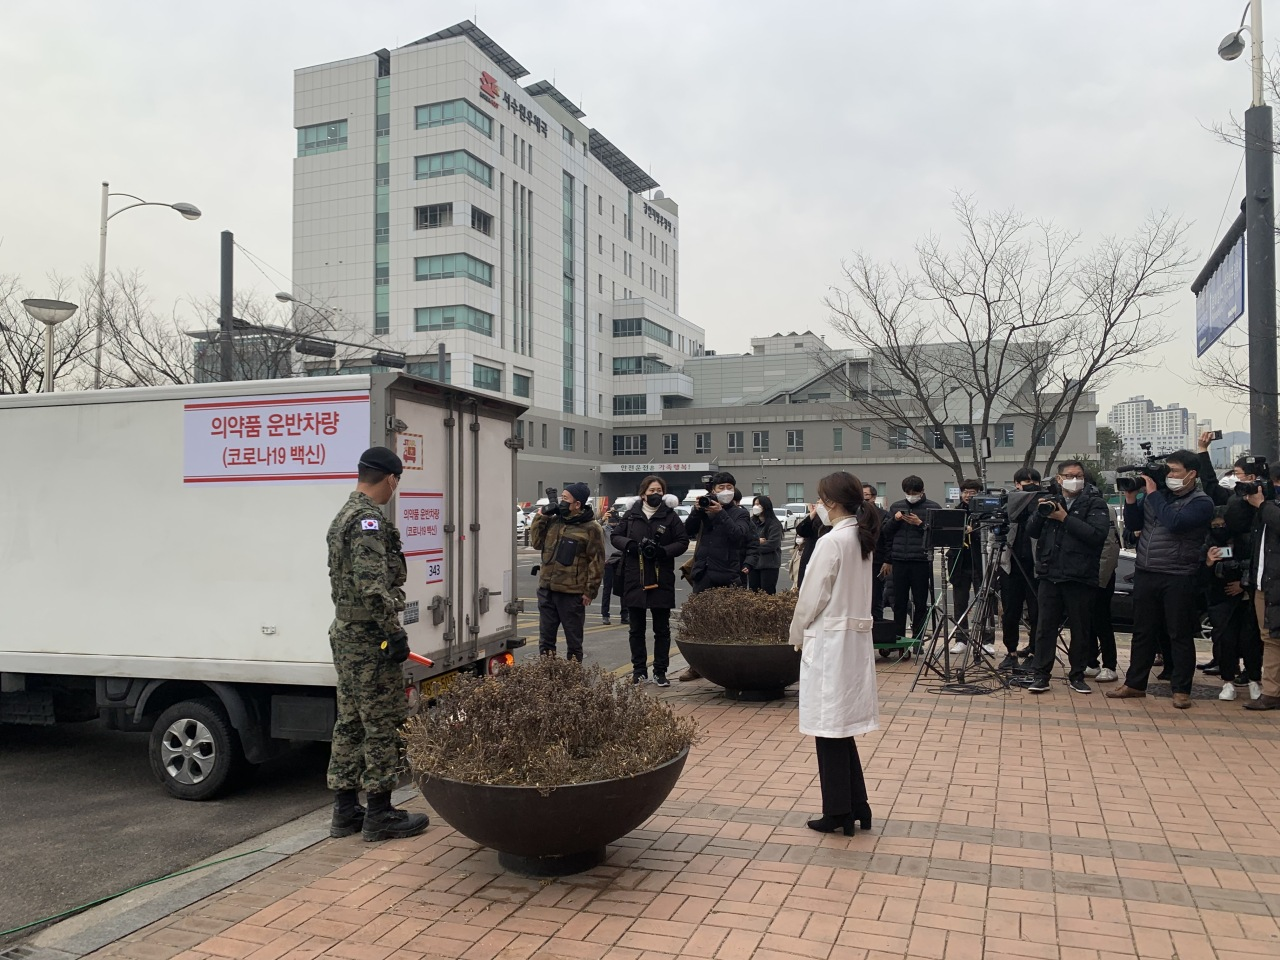 A truck carrying AstraZeneca vaccines arrives at a public health center in Suwon, Gyeonggi Province, on Thursday, a day ahead of their rollout. (Kim Arin/The Korea Herald)